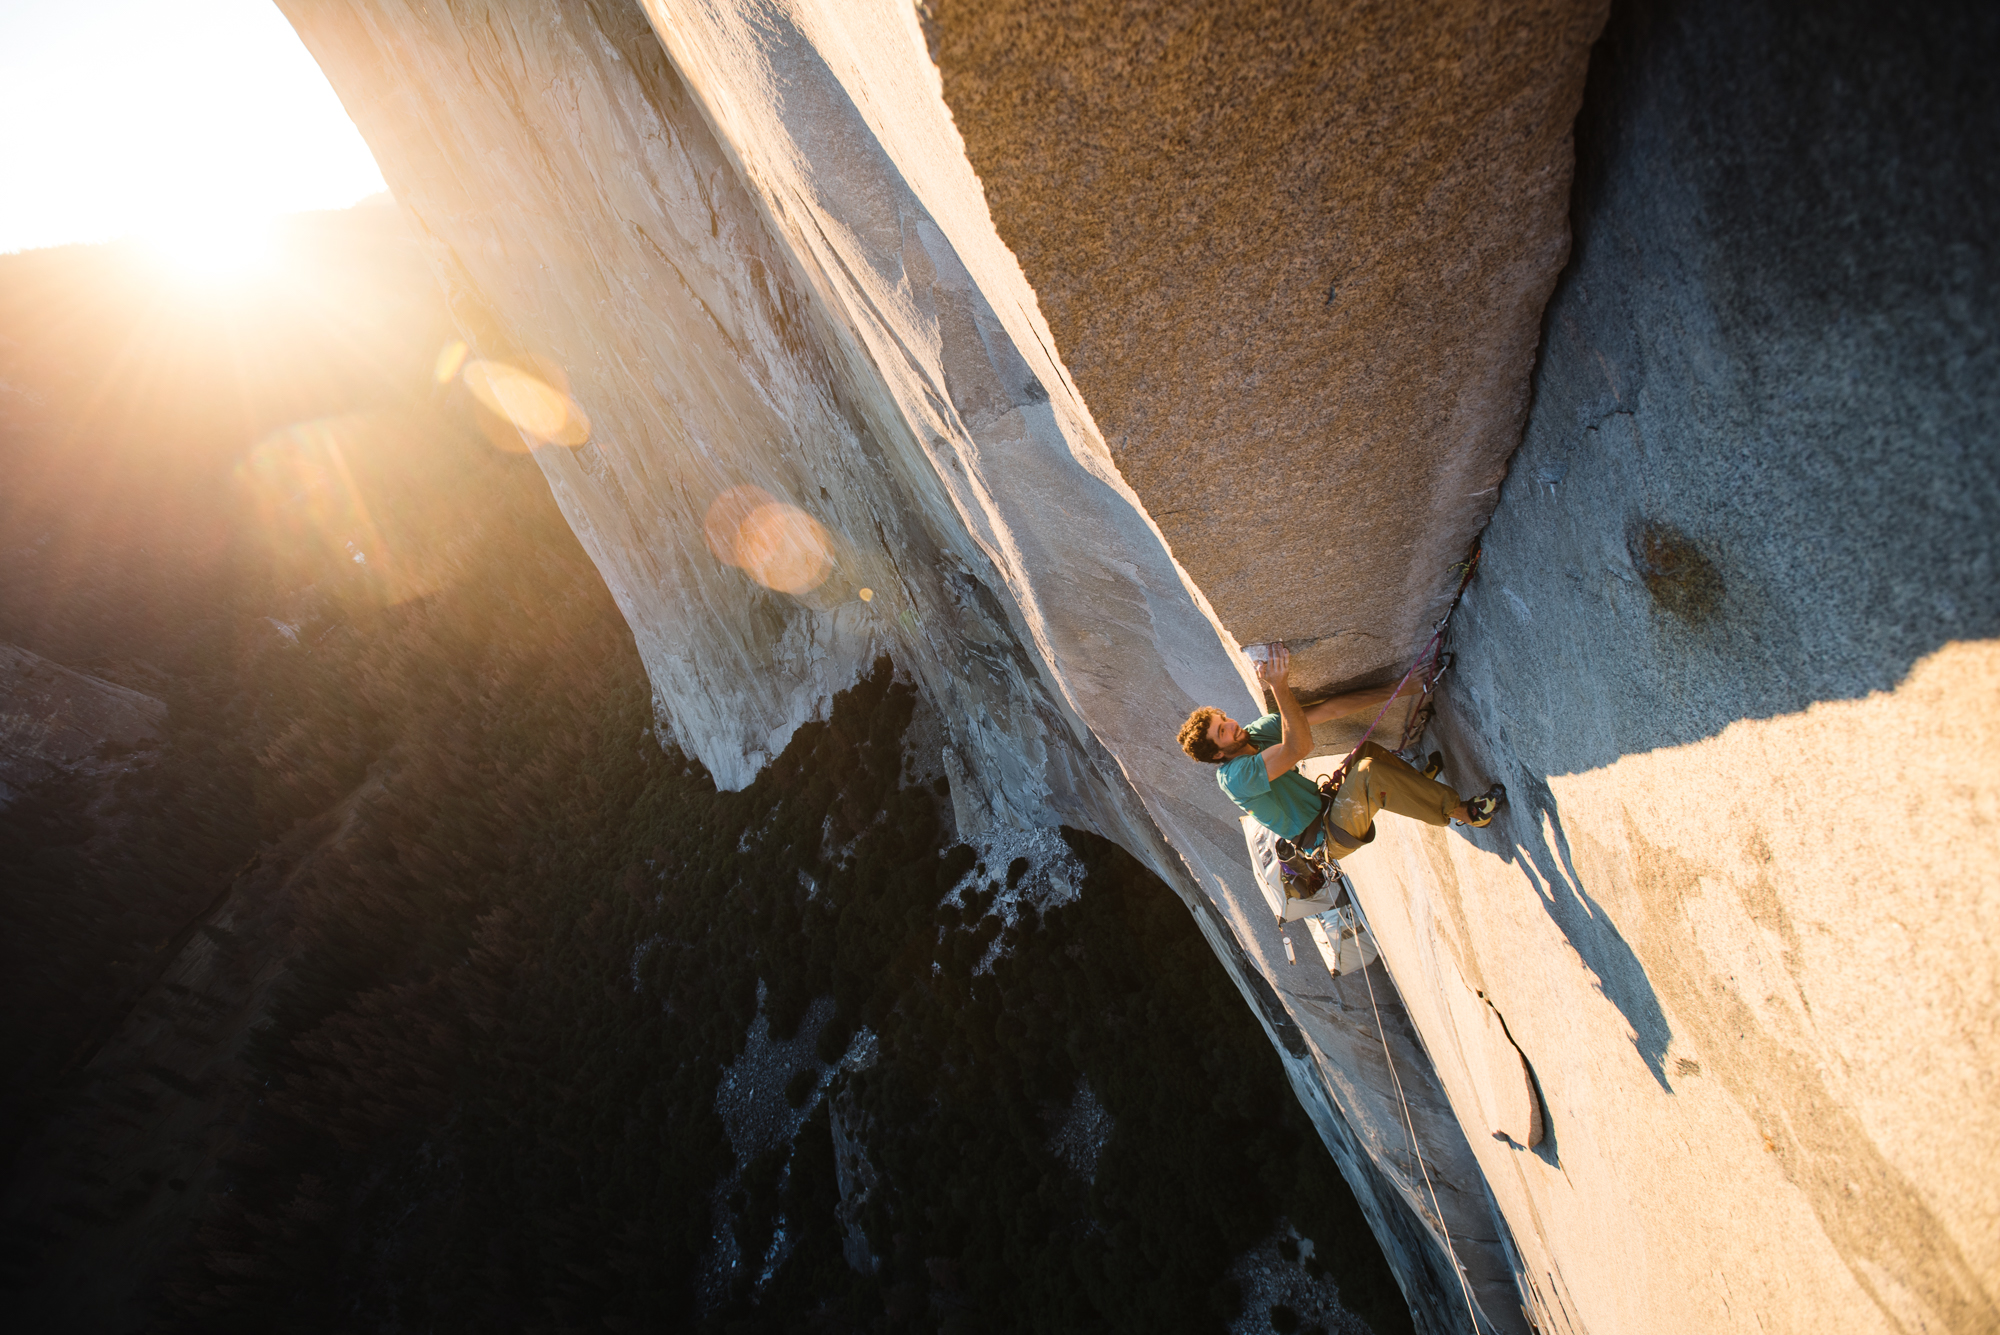 Jacopo Larcher climbs The Nipple pitch (5.13d) on Zodiac (VI 5.13d) at sunset. [Photo] Francois Lebeau and Black Diamond Equipment